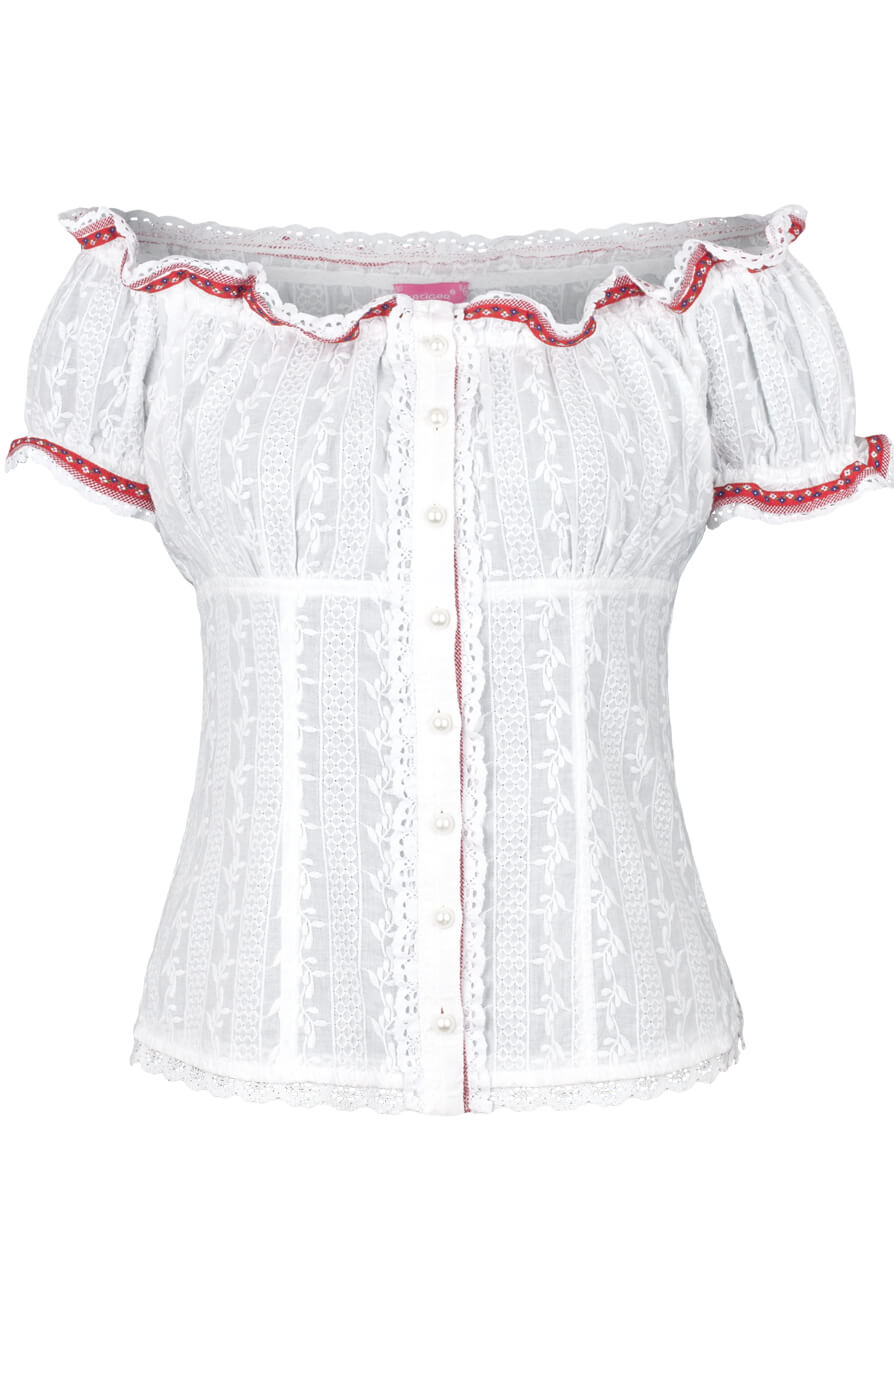 weitere Bilder von Traditional blouse 33840-1 white red